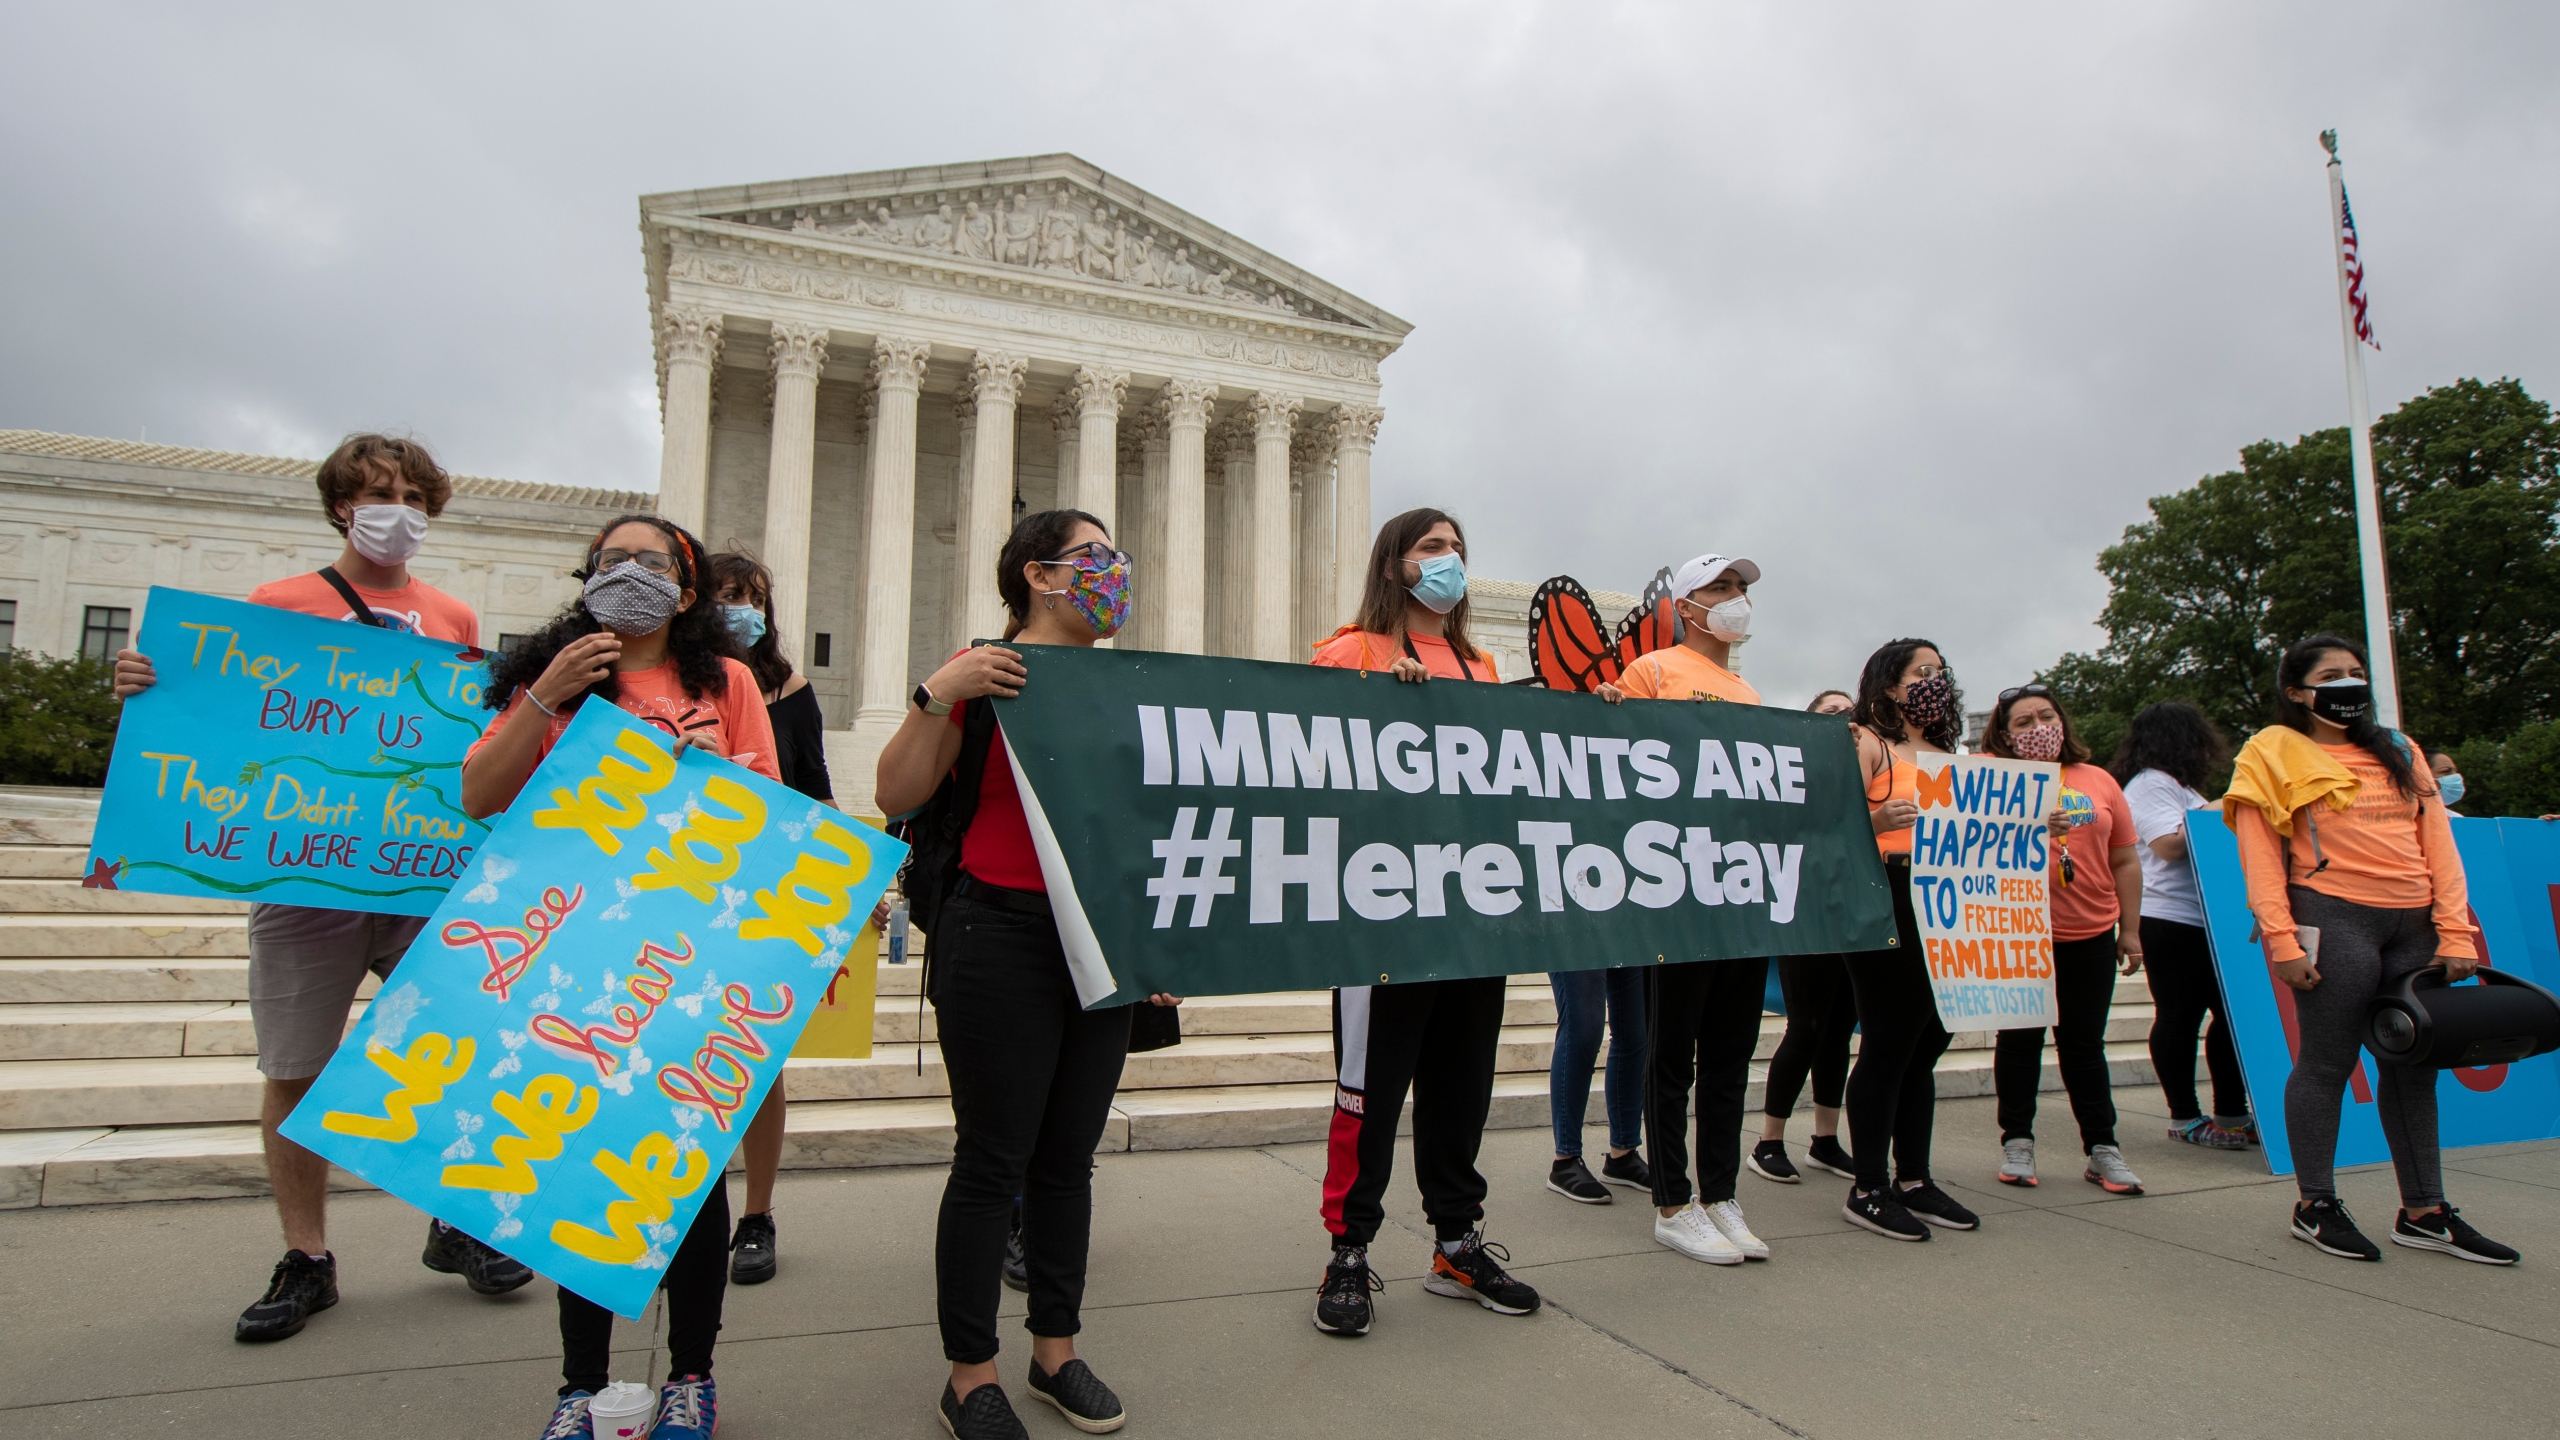 In this June 18, 2020, photo, Deferred Action for Childhood Arrivals (DACA) students celebrate in front of the Supreme Court after the Supreme Court rejected President Donald Trump's effort to end legal protections for young immigrants. (Manuel Balce Ceneta / Associated Press)